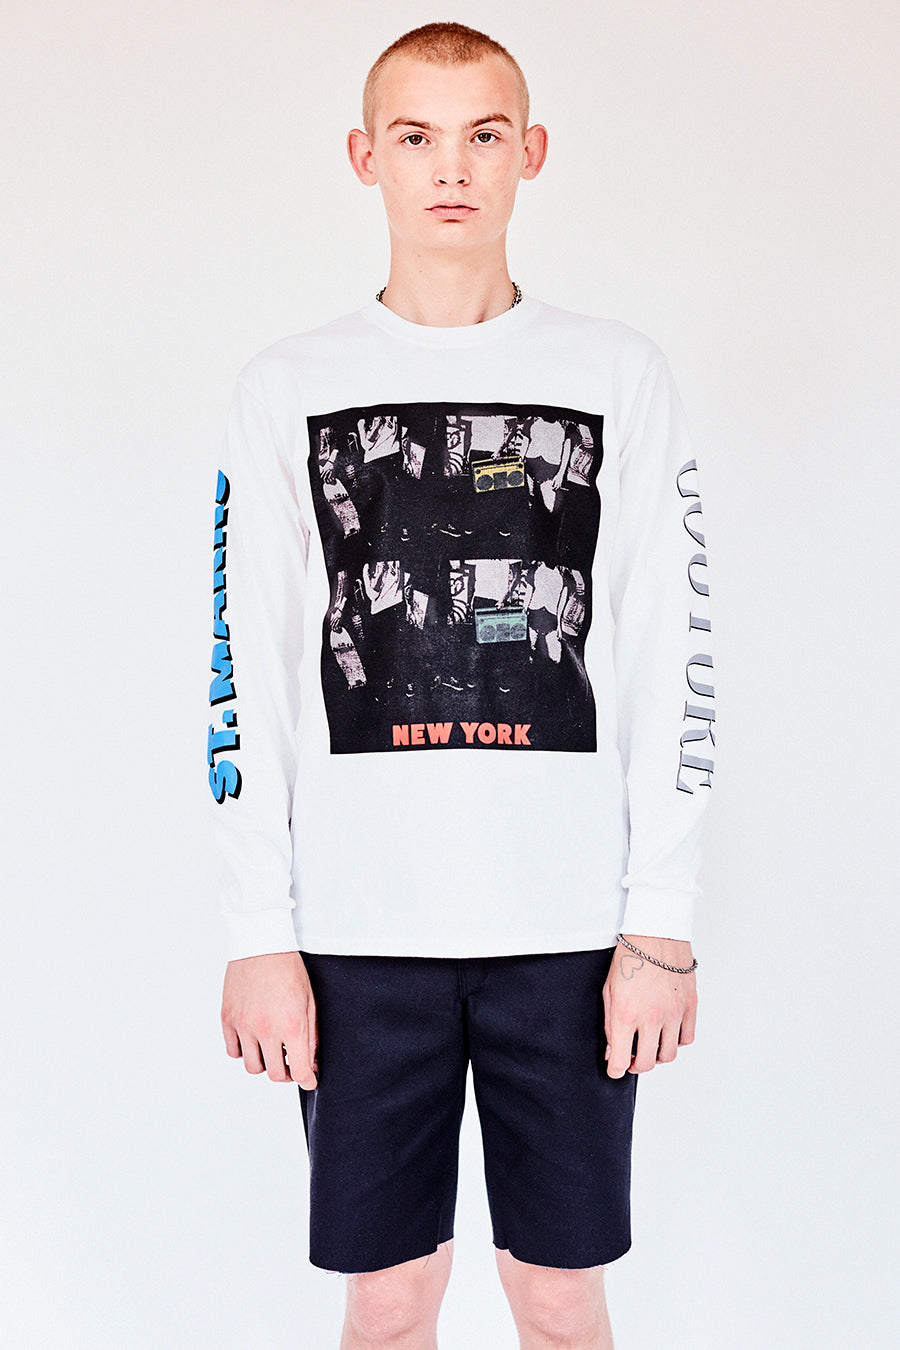 Brand New from New York City: Stmarksnewyork.com. Shop The St. Marks boombox white long sleeve T-shirt: featuring our image from St Marks Place, and the St. Marks Couture New York logo on the back.  Hand silkscreen printed in New York with love.